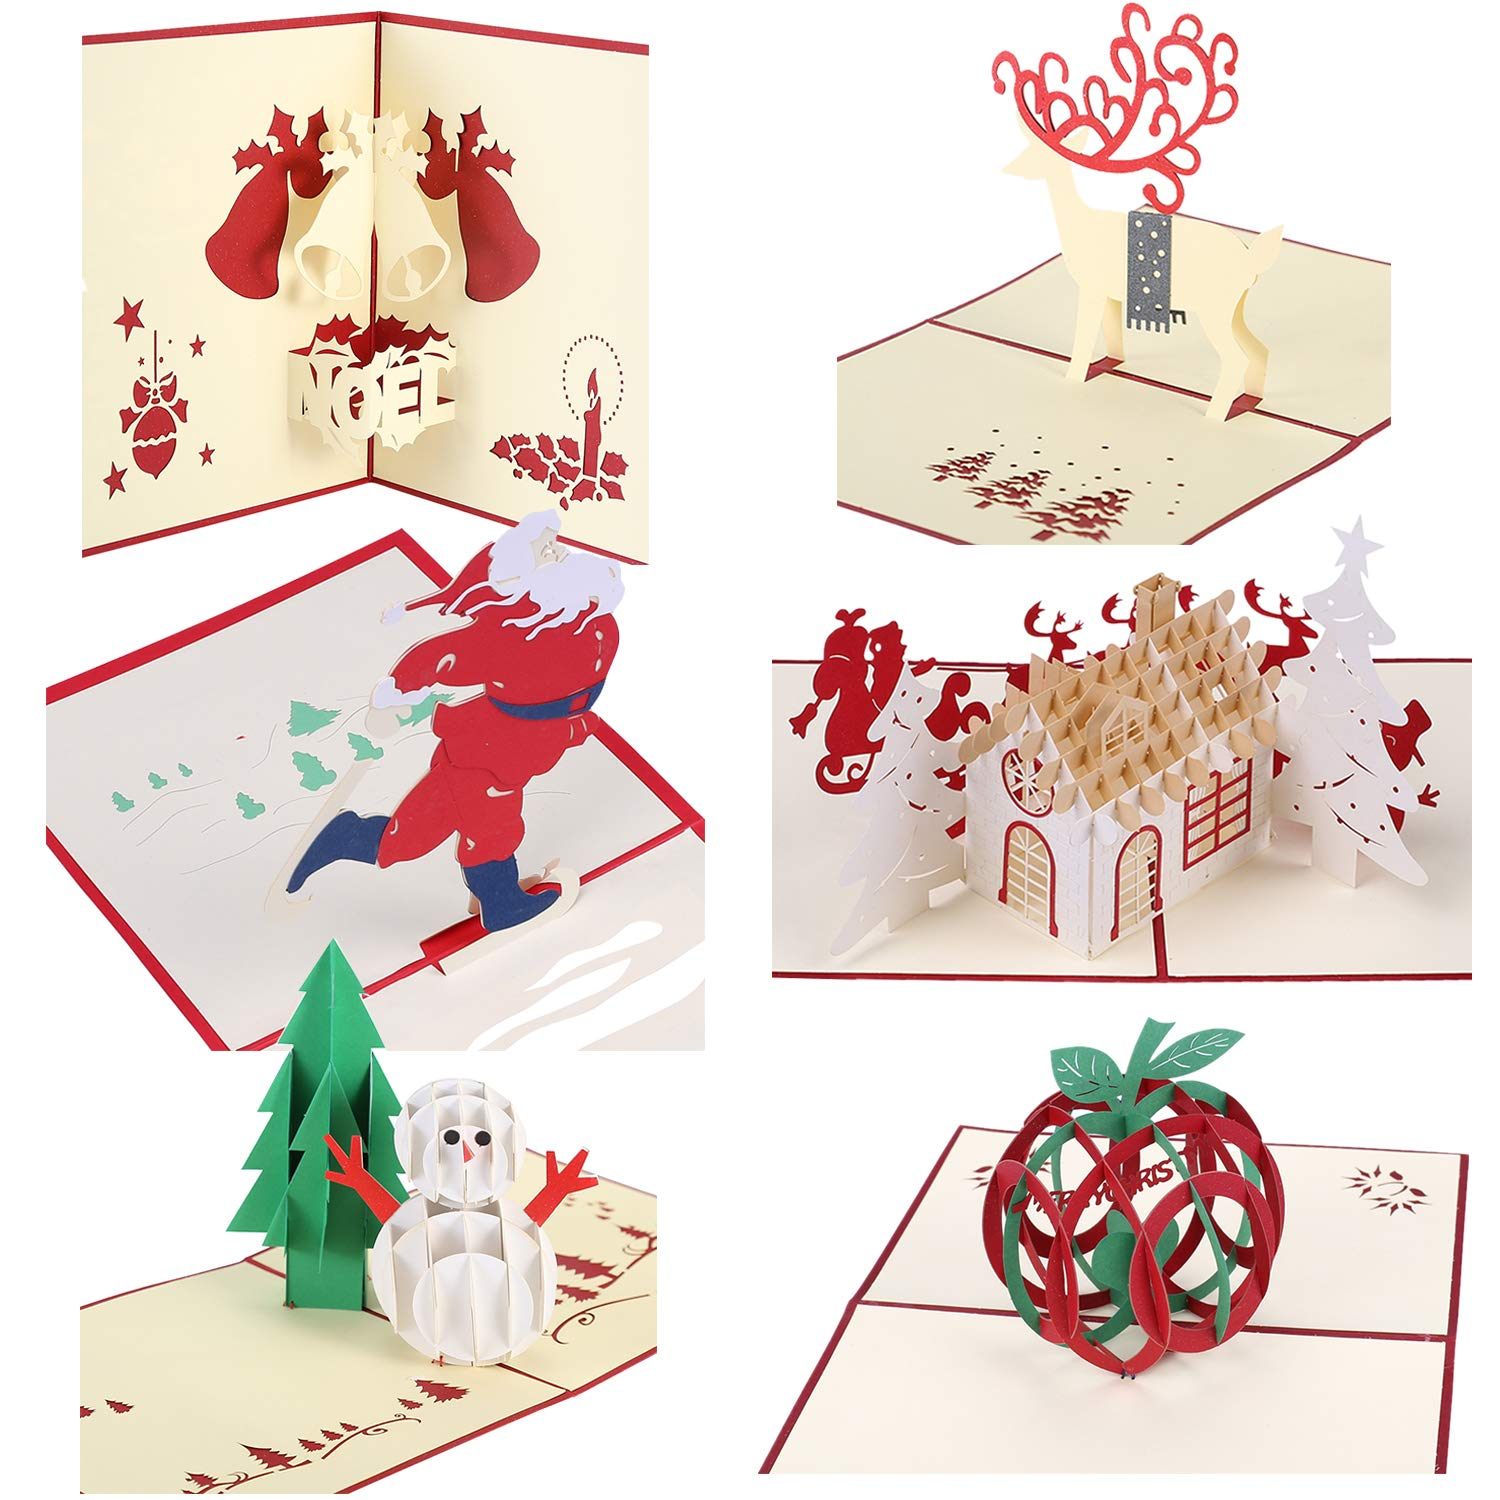 Pop Up Christmas Cards.3d Christmas Cards Pop Up Greeting Holiday Gifts Card For Xmas New Year 6pcs